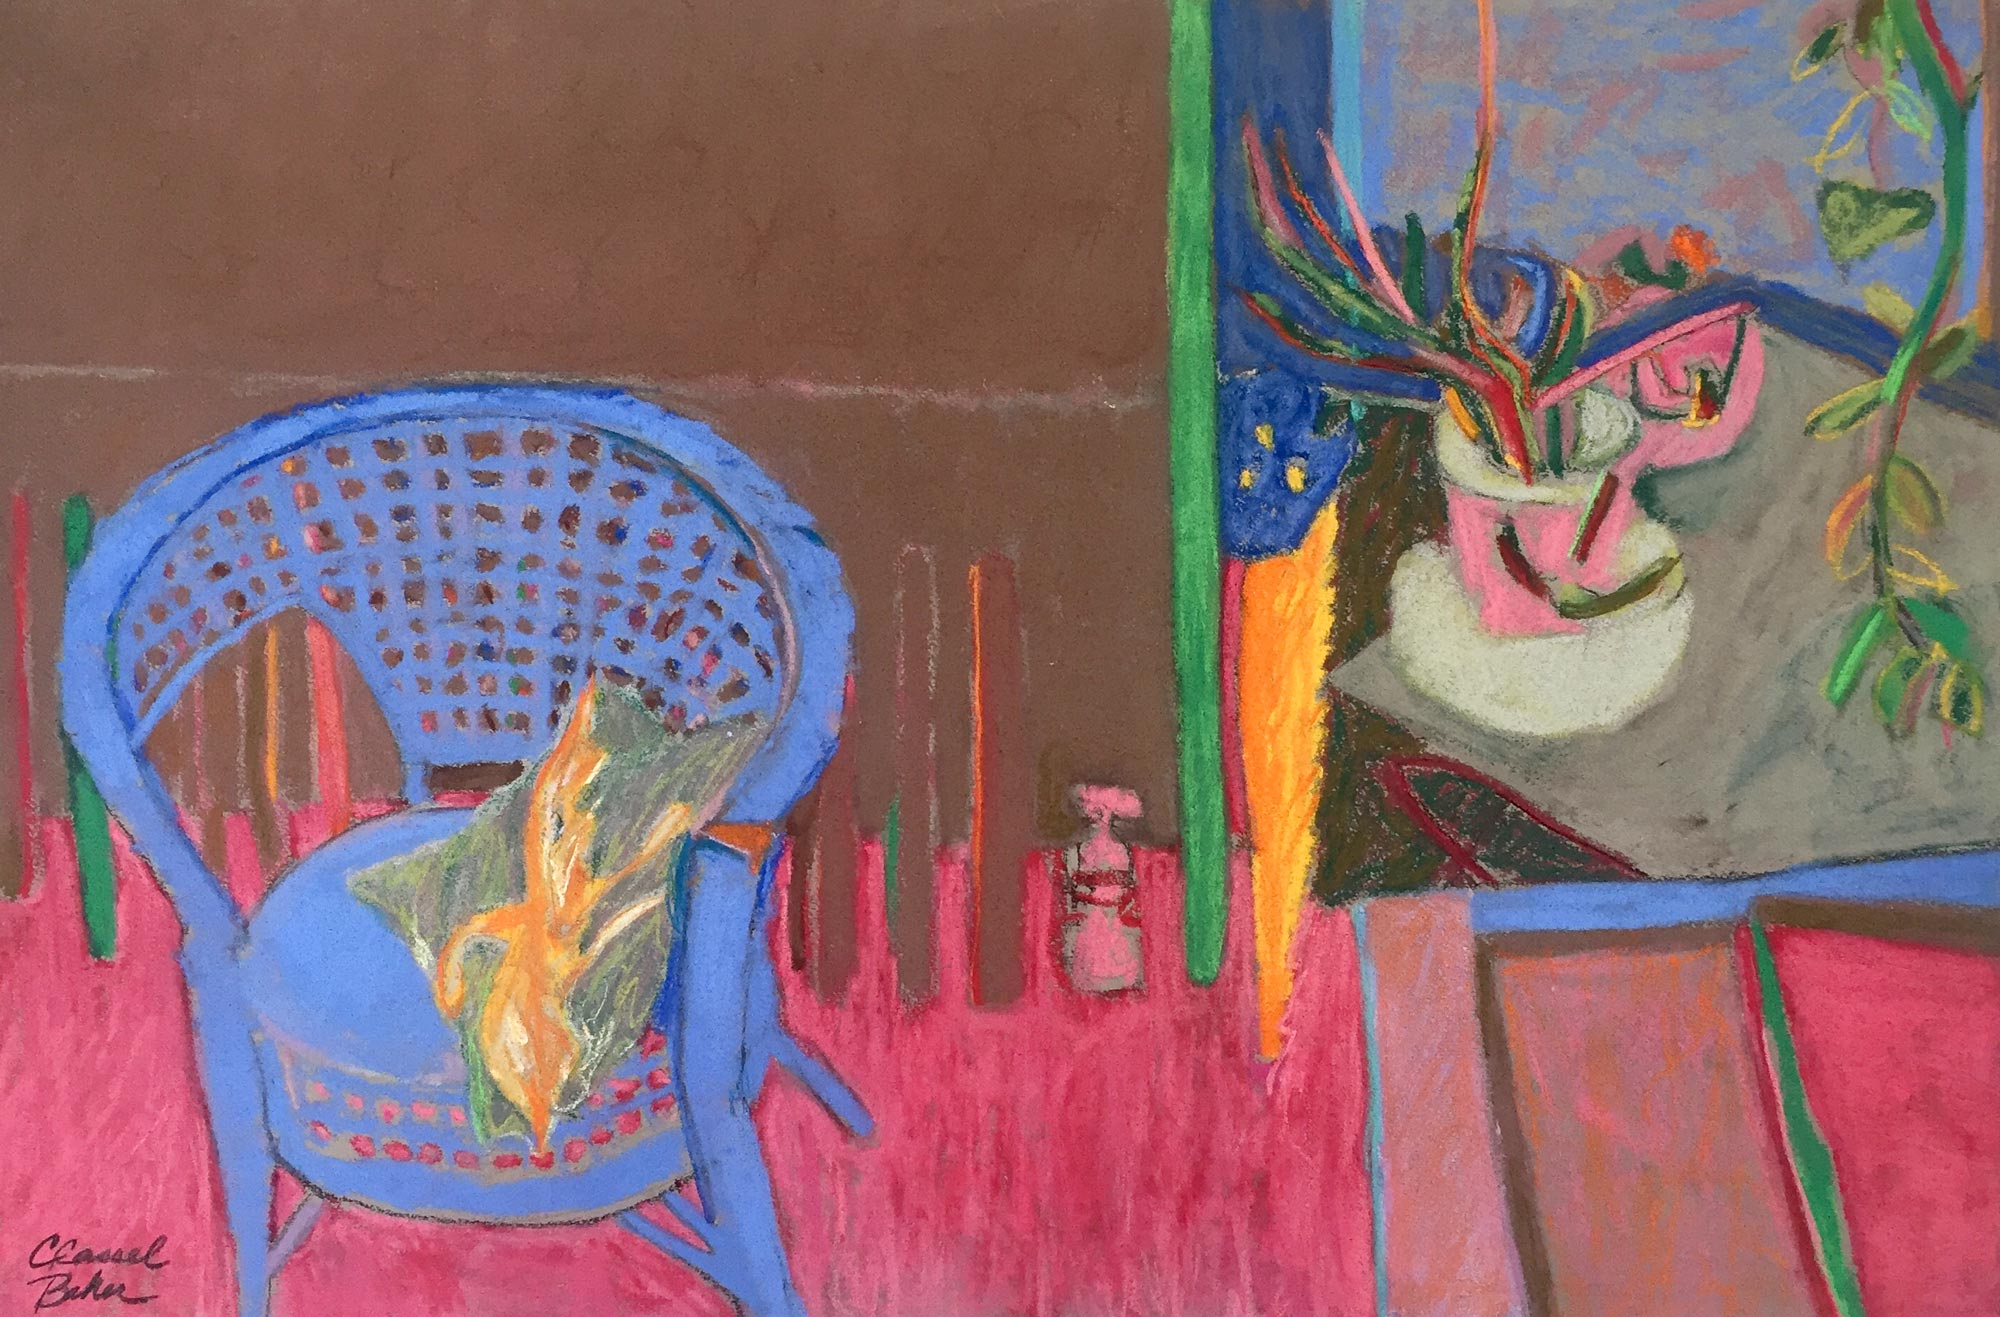 carol-cassel-baker_02-005_pastel_saw-and-blue-chair_1986_v02_lowres.jpg